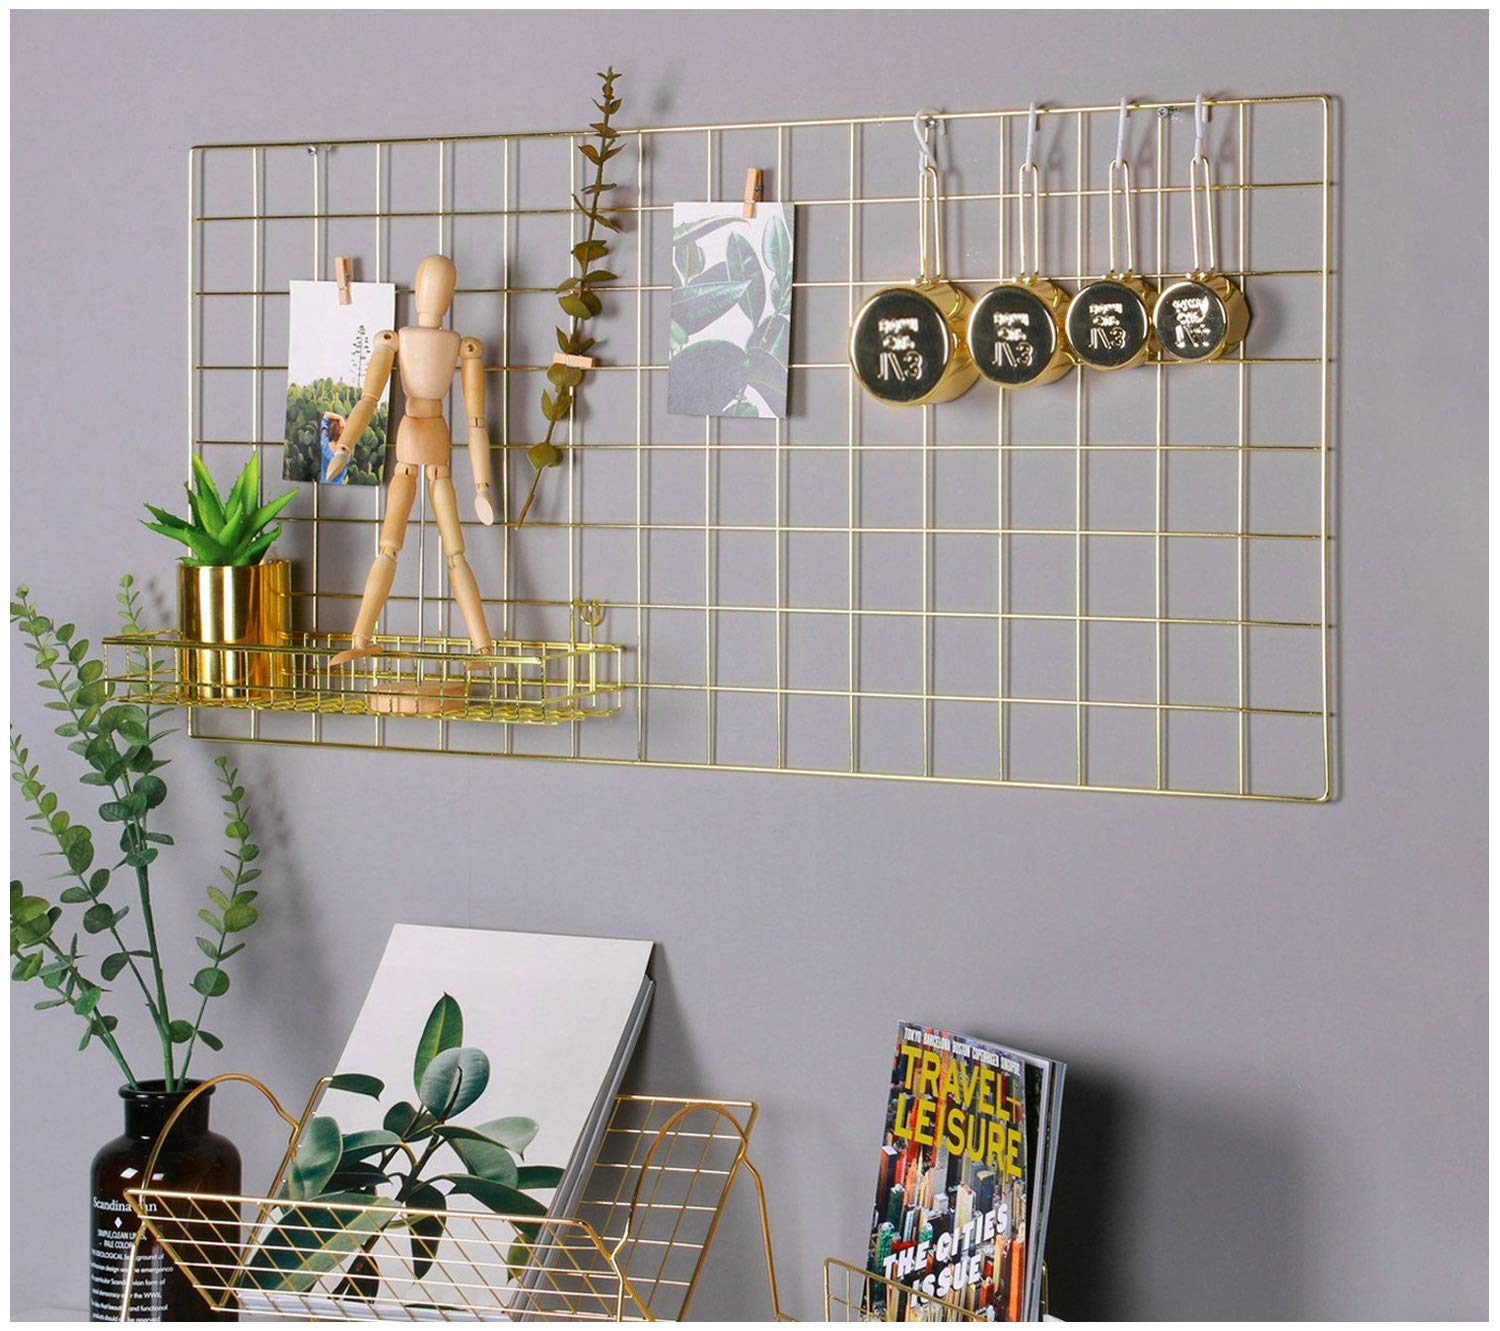 Simmer Stone Gold Wall Grid Panel Photo Hanging Display & Wall Decoration Organizer, Multi-Functional Wall Storage Display Grid, 10 Clips & 4 Nails Offered, Set of 1, Size 17.7''x37.4''